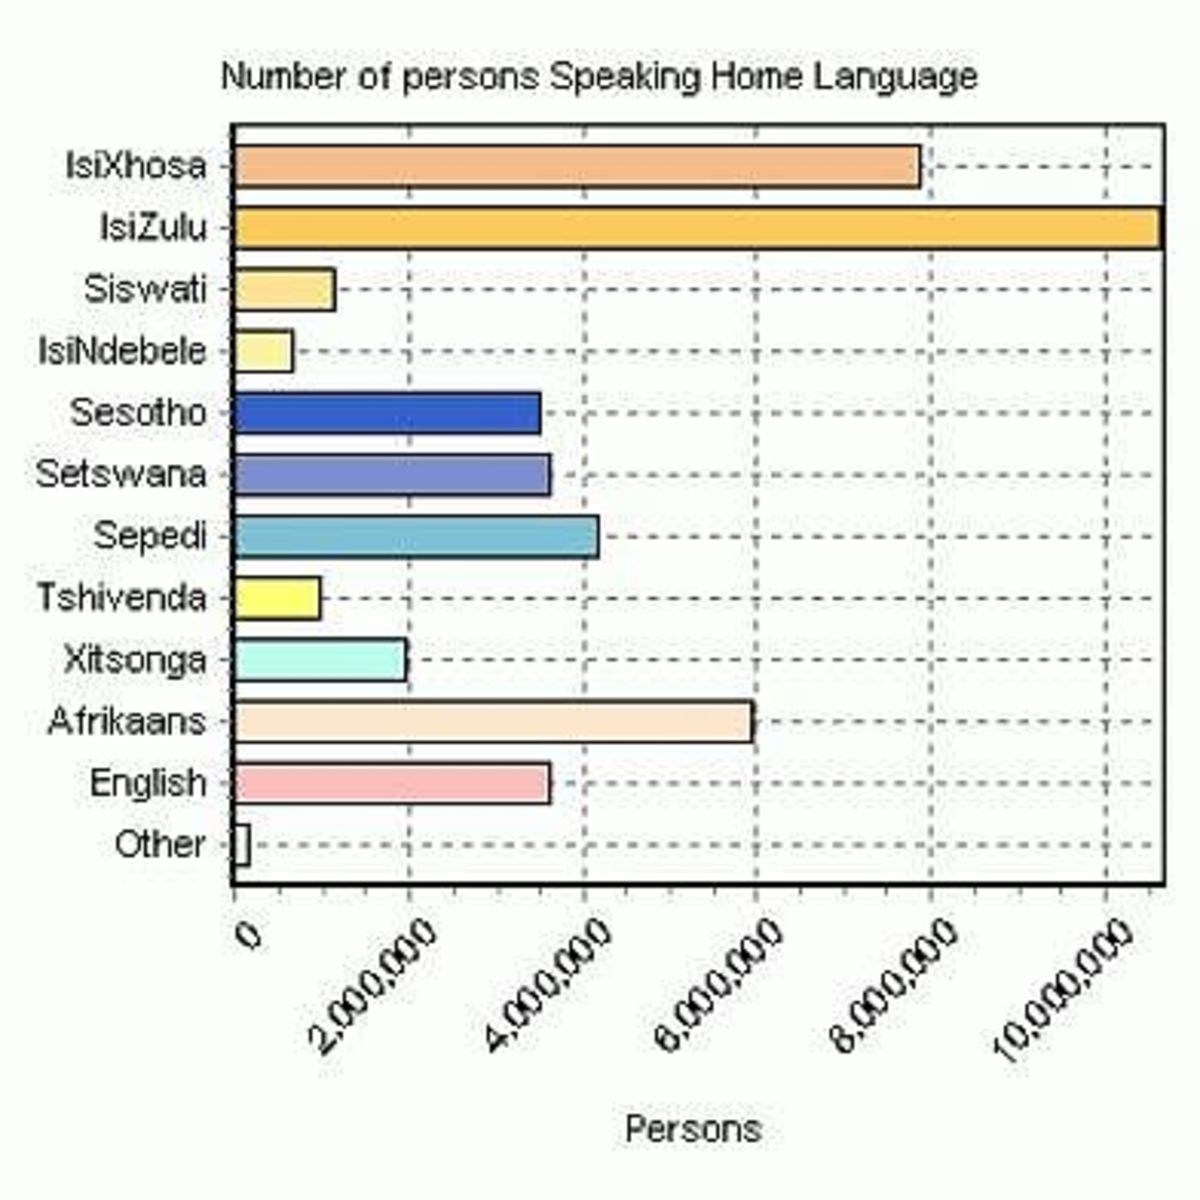 Home languages of South Africa's citizens